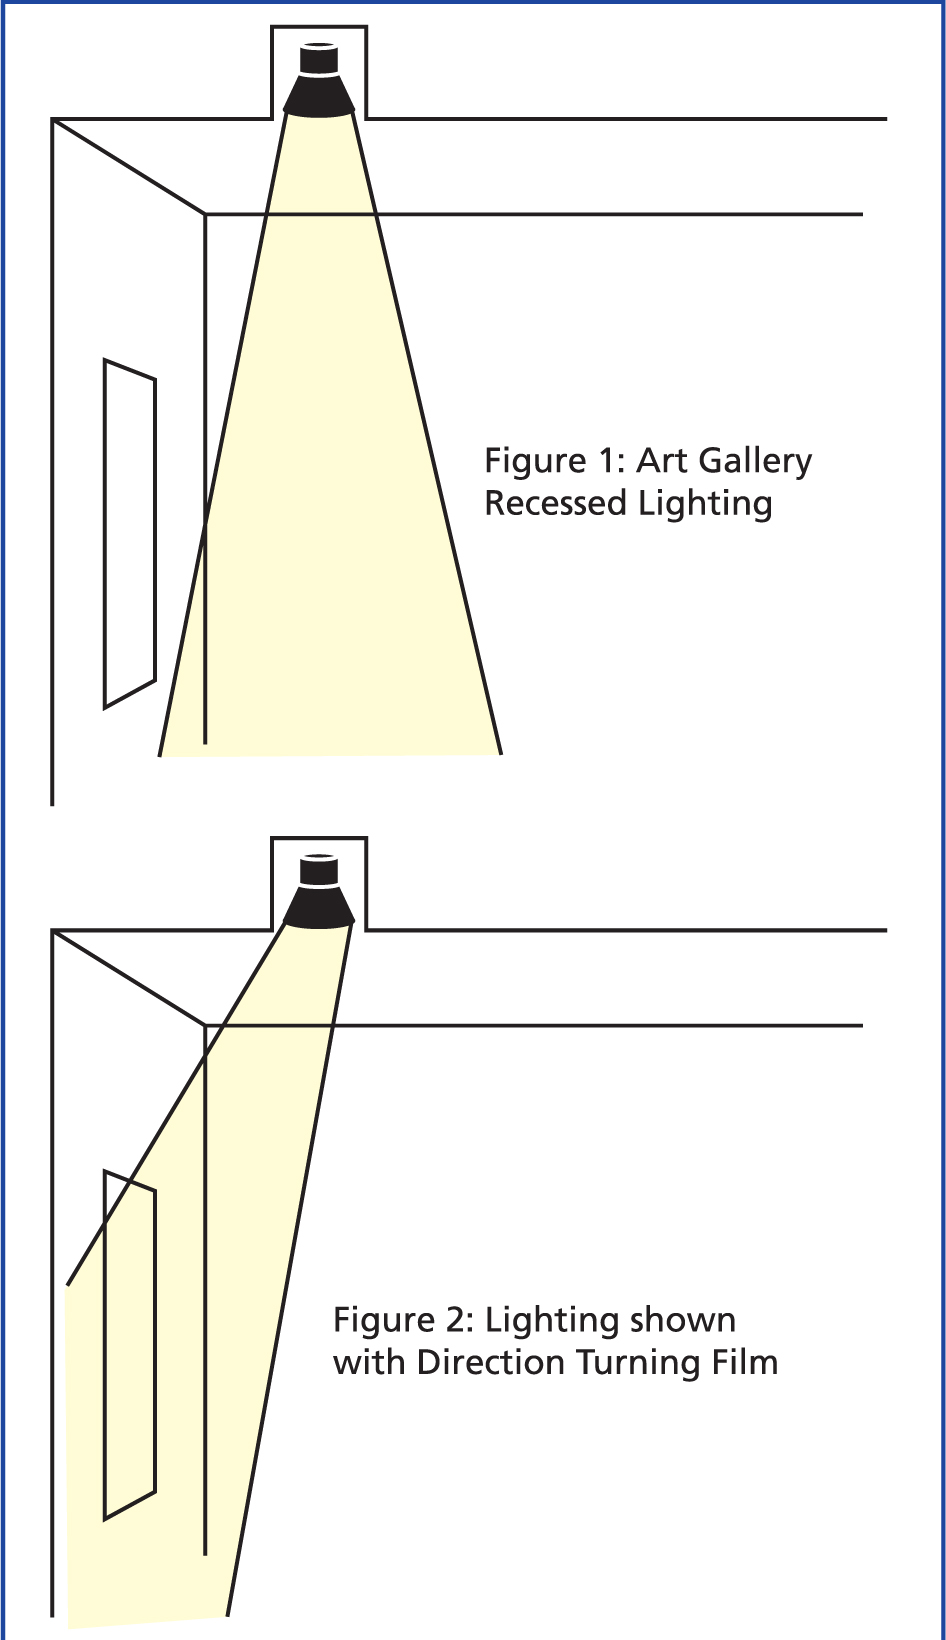 Recessed Lighting Placement Guidelines  Wall wash lighting placement recessed  sc 1 st  eaftab.com & Recessed Lighting Placement Guidelines: Kitchen lighting wall lights ...